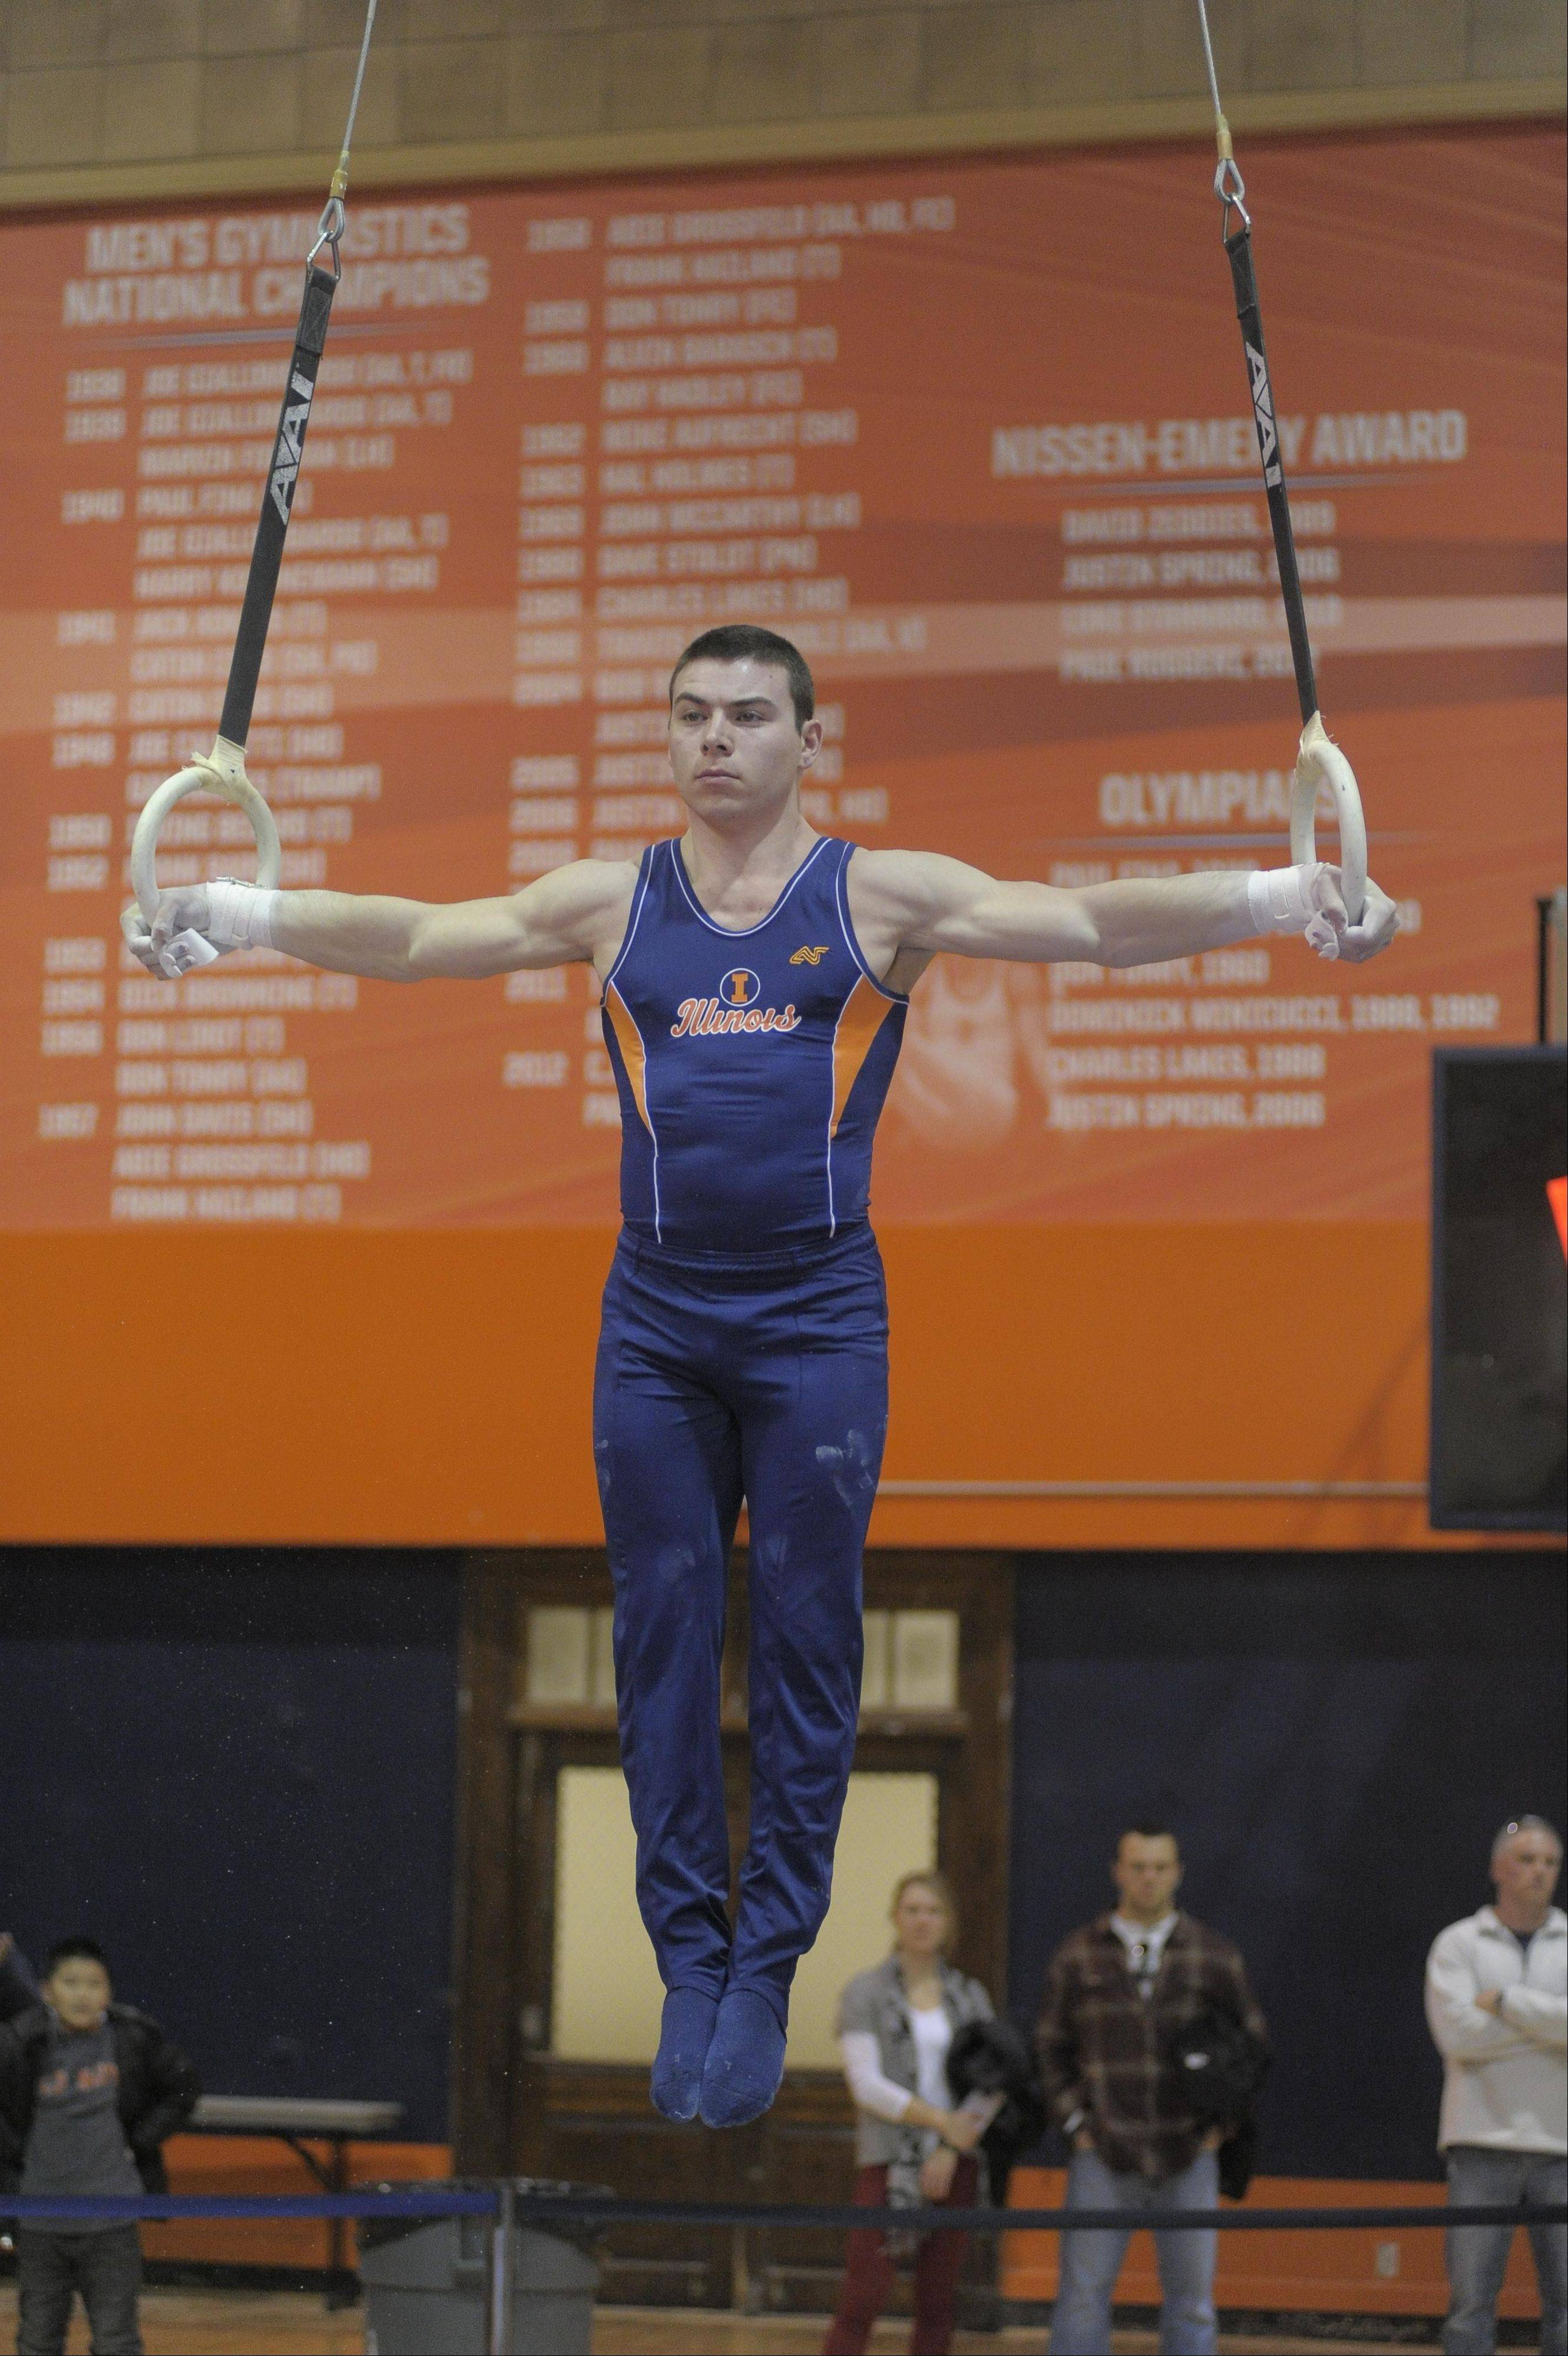 Buffalo Grove native Mike Wilner competes on the still rings for the University of Illinois men's gymnastics team. He's ranked No. 1 in the event nationally and has his sights set on a national title.